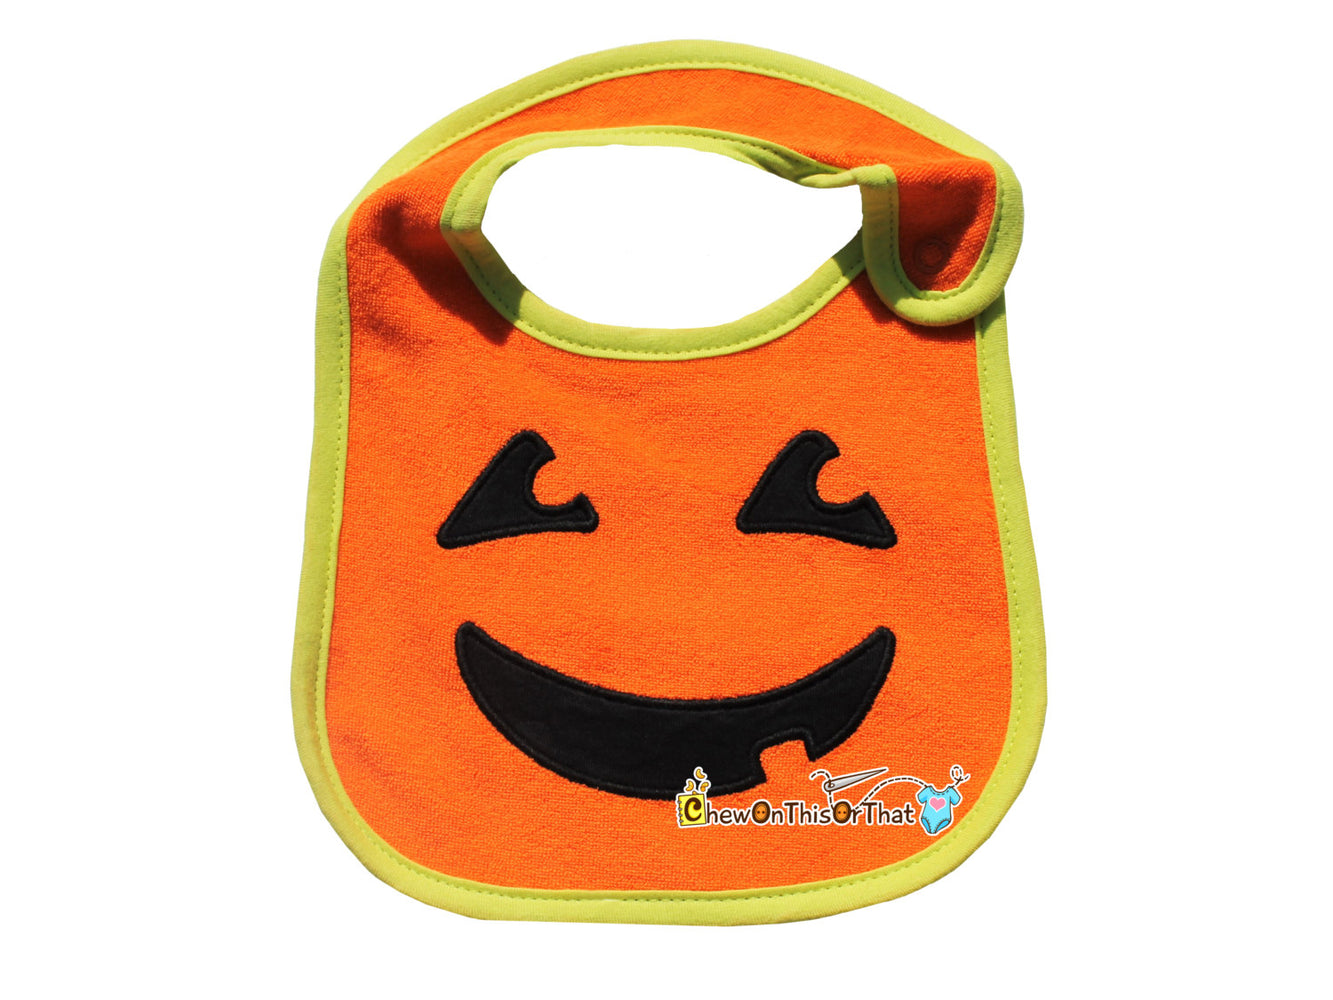 My First Halloween Embroidered Pumpkin Bib Personalized with Baby Name - Jack-O-Lantern Costume, Jack O Lantern Outfit - Chew On This Or That